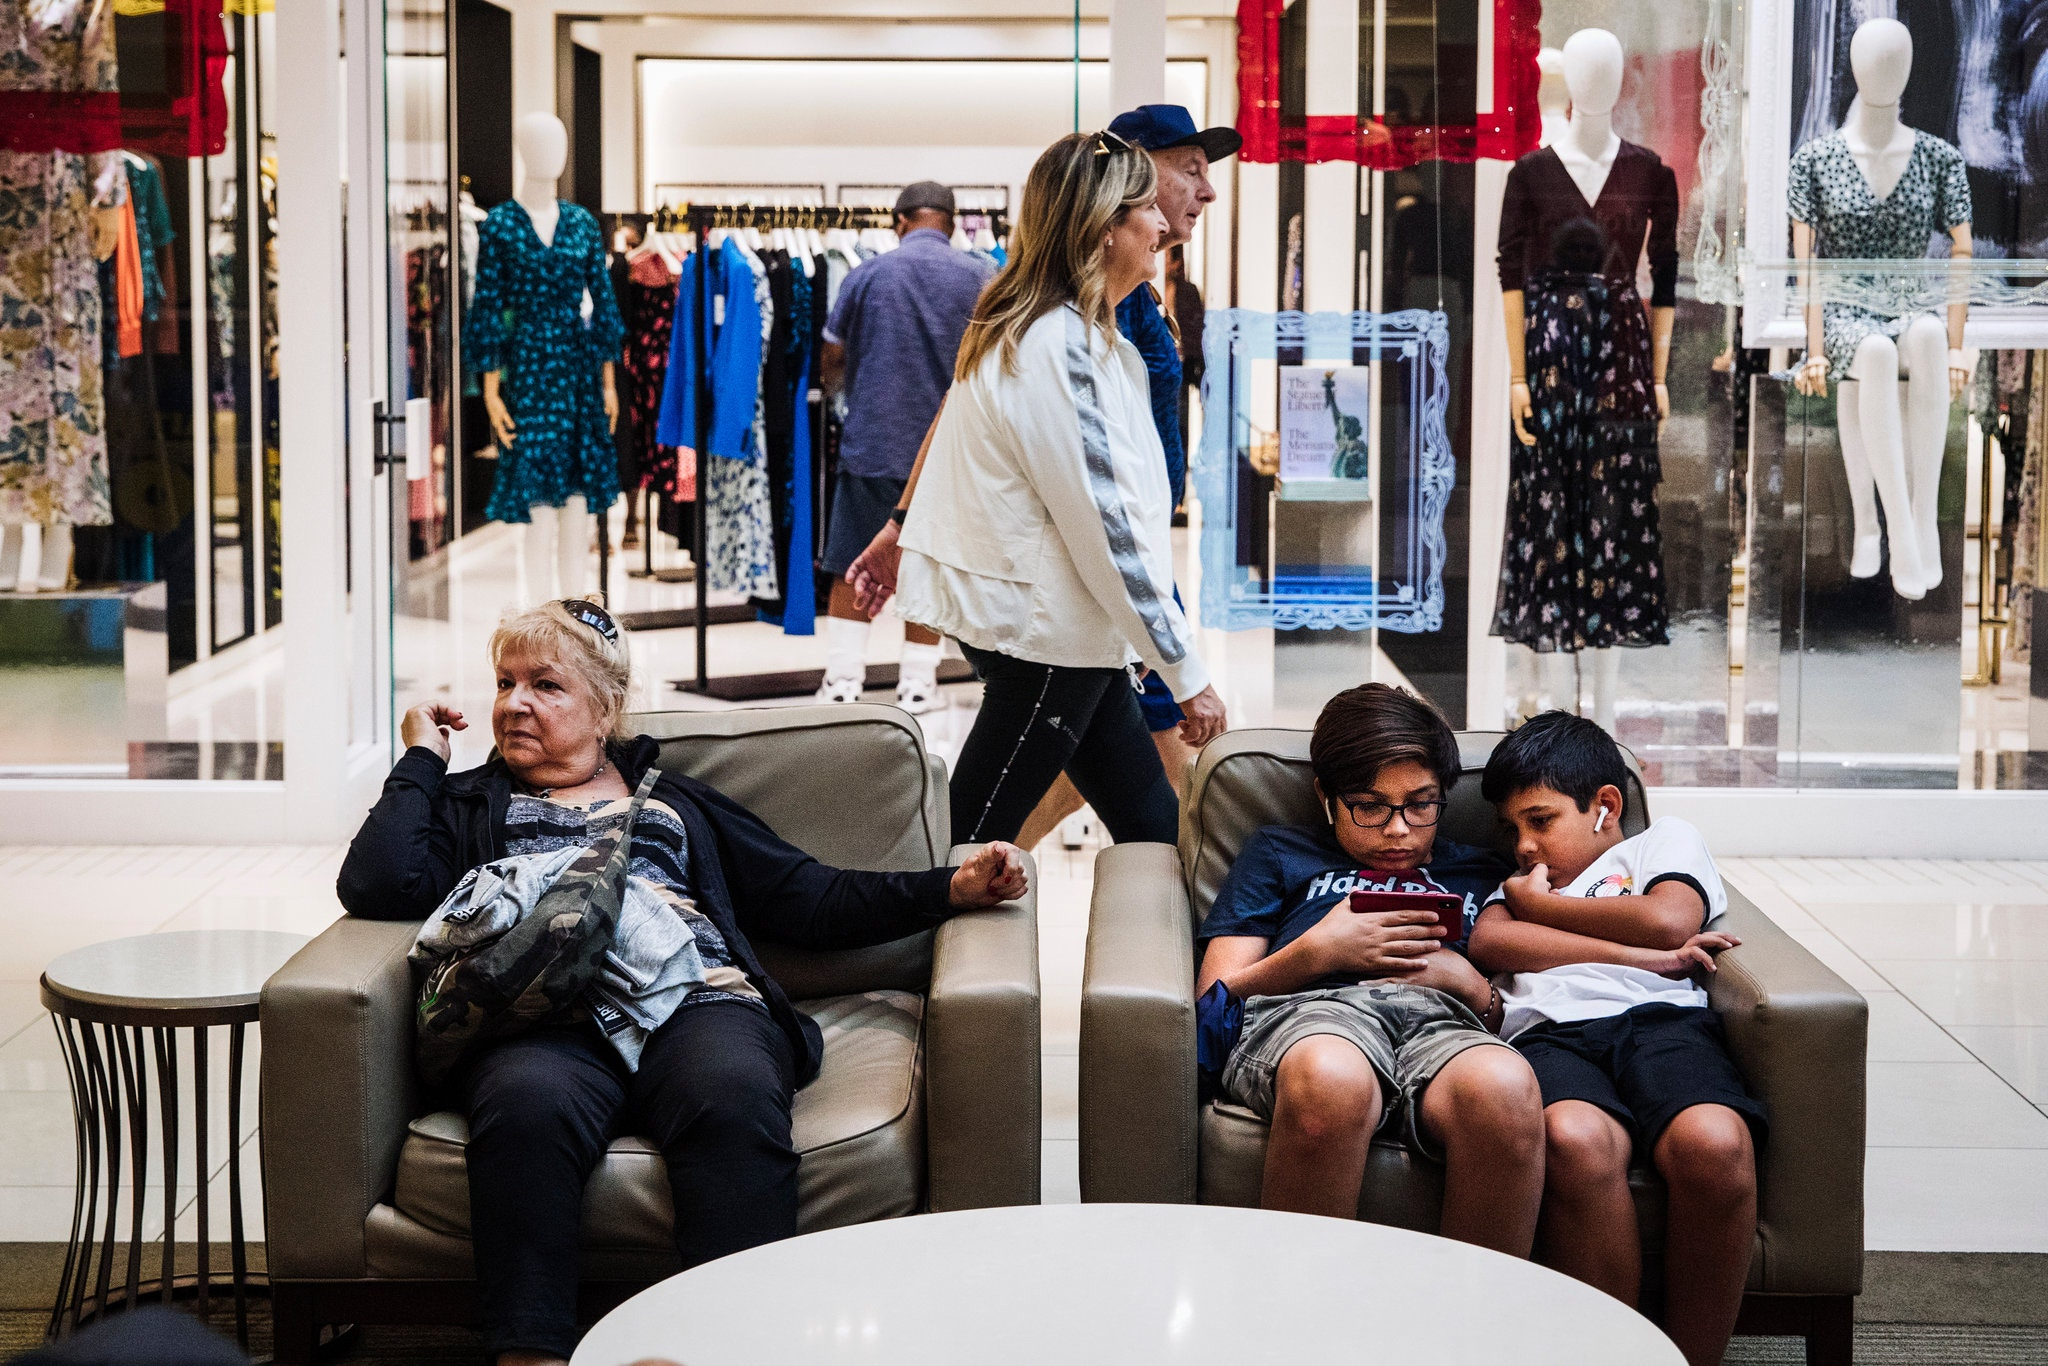 With an occupancy rate of nearly 100 percent, the mall is widely considered one of the most successful in the country. Credit...Scott McIntyre for The New York Times